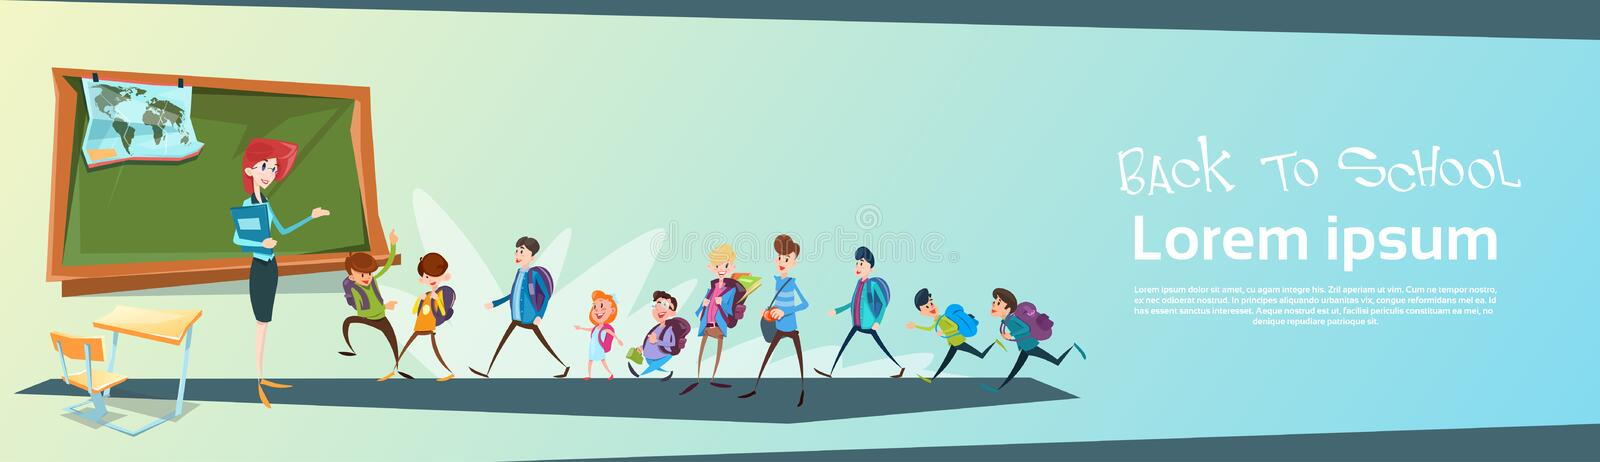 Schoolchildren Group With Teacher Classroom Back To School Education Banner royalty free illustration